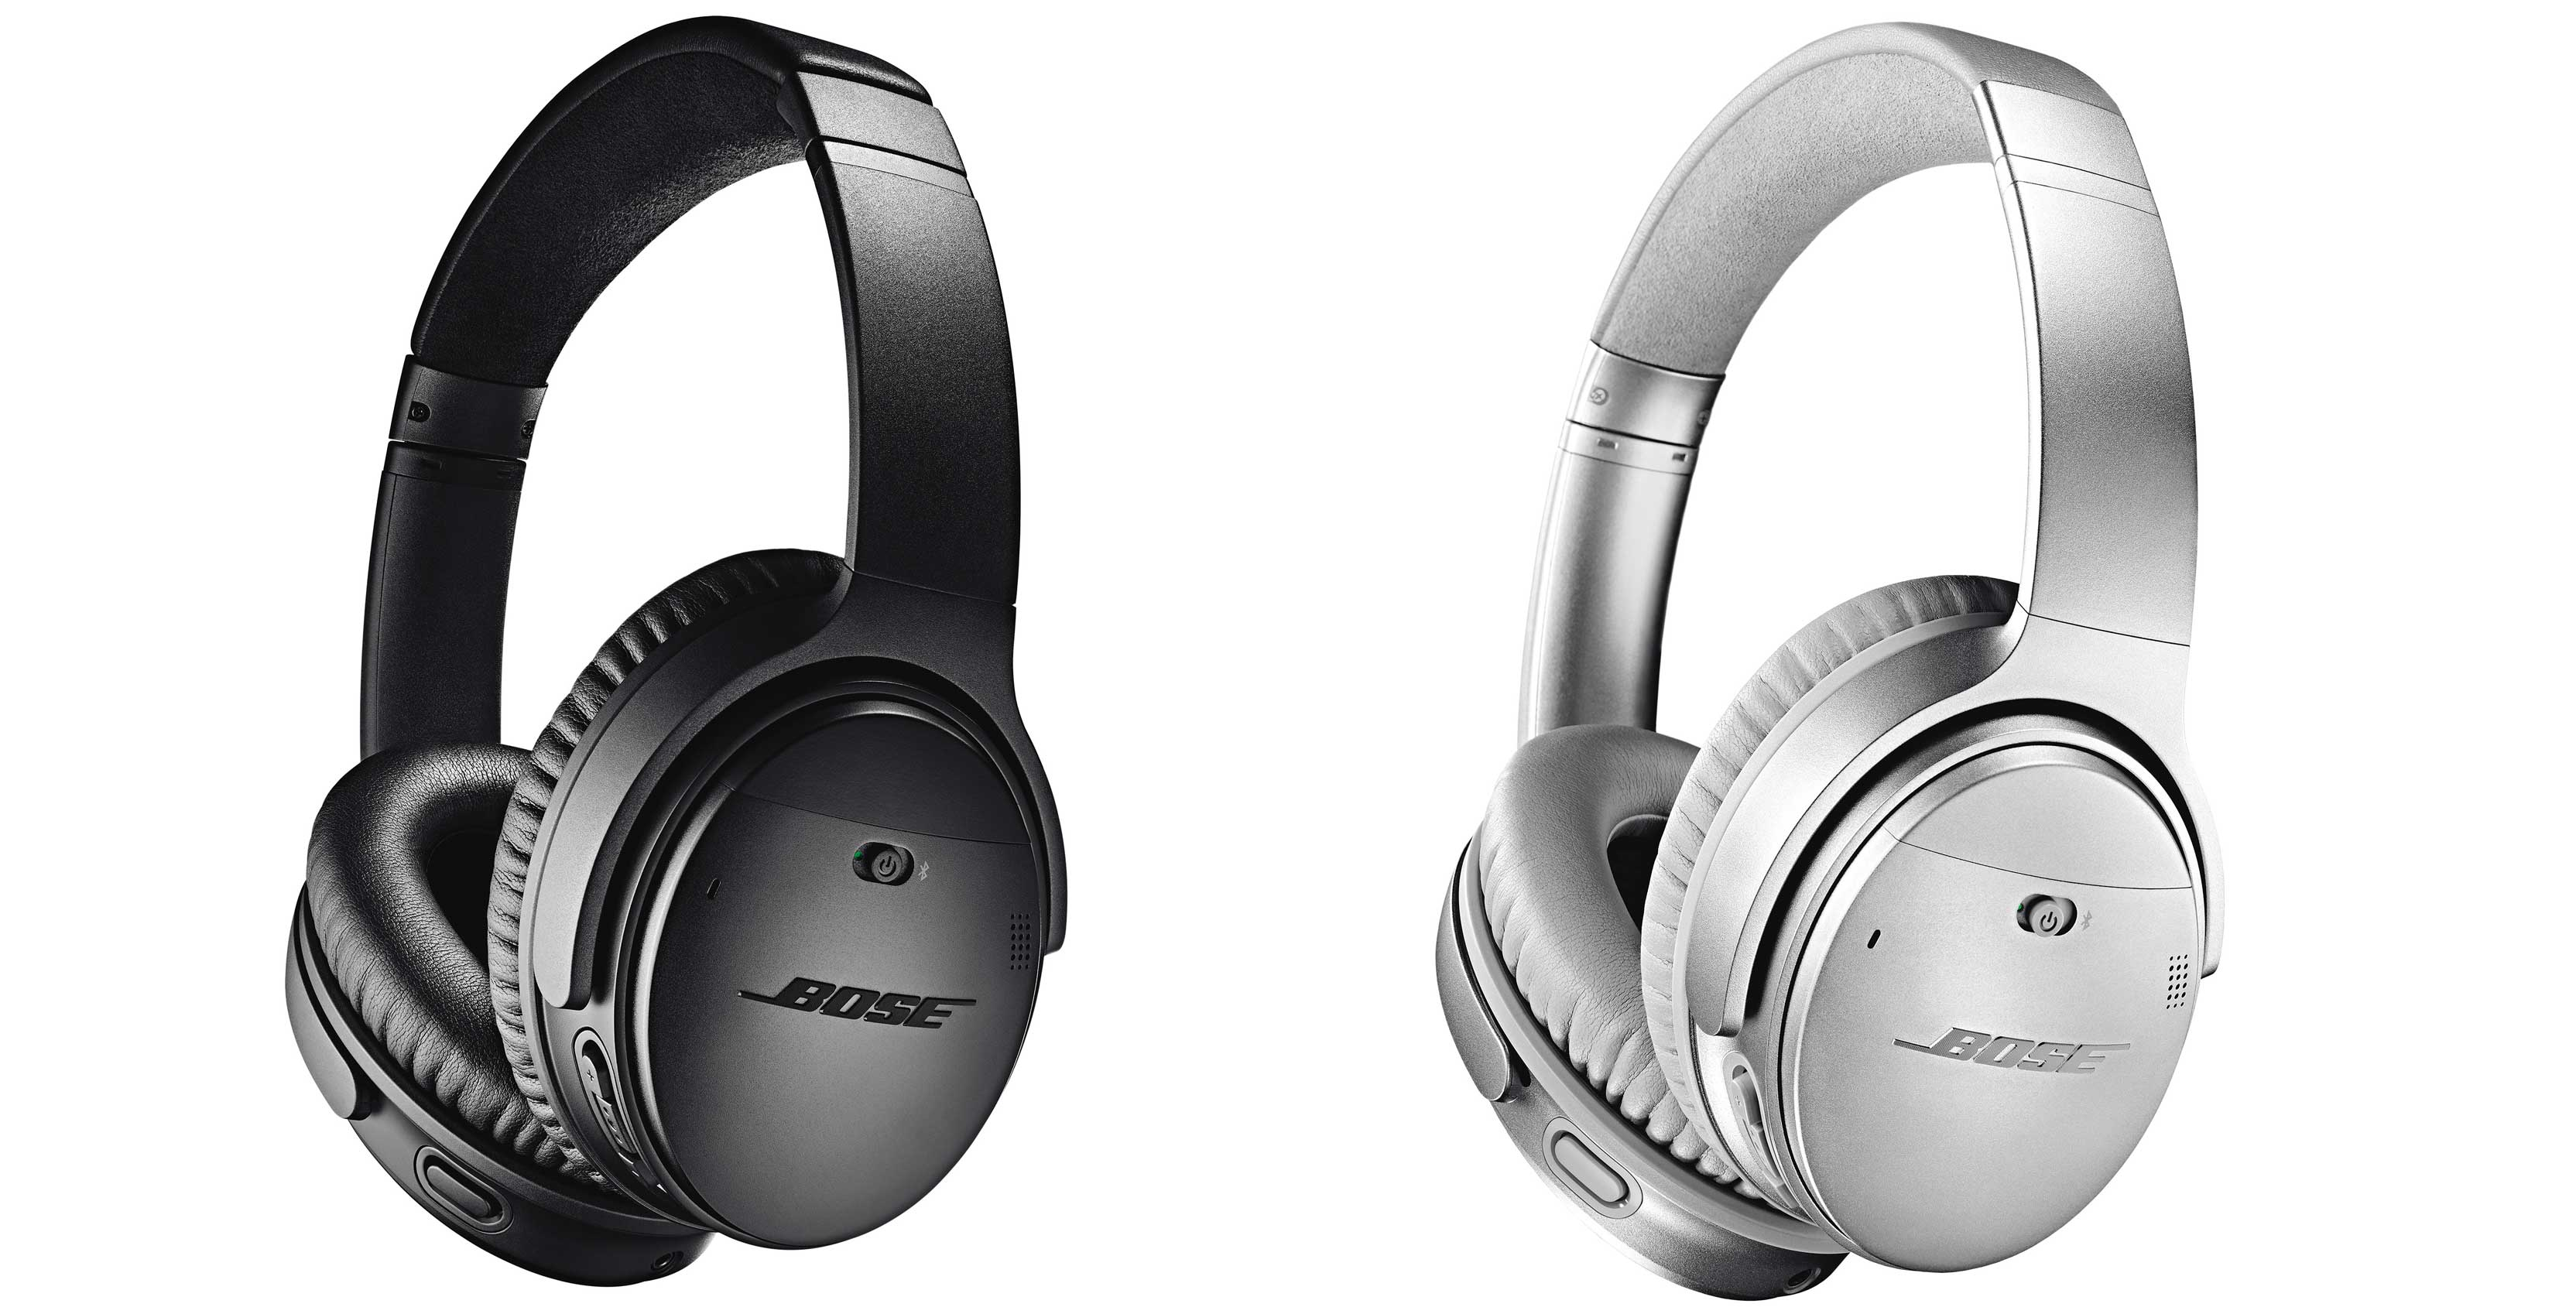 7aa4689080f The Bose QuietComfort 35 II headphones are some of the best in the biz.  They sound good and the active noise cancellation is top-notch, but the  $350 MSRP ...